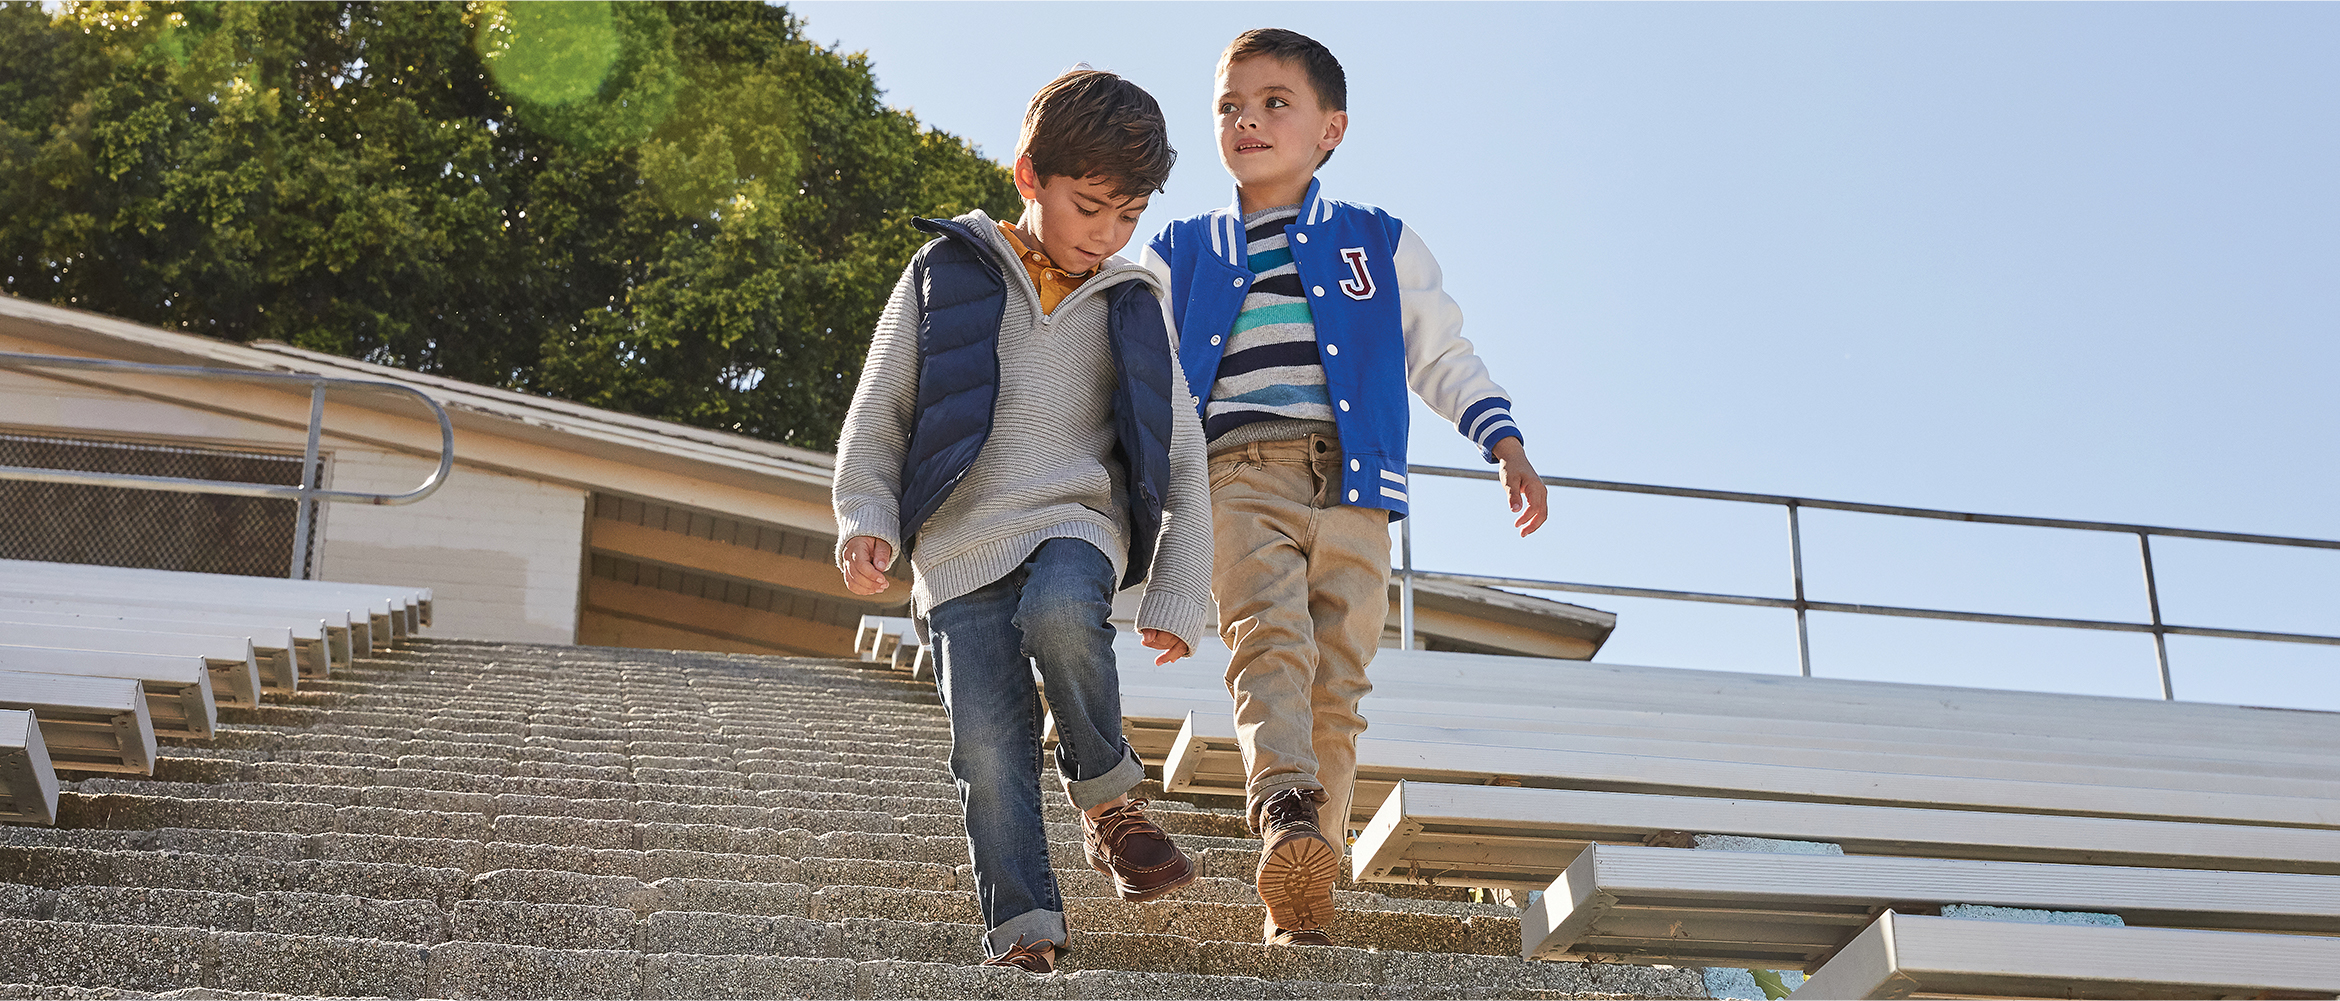 A pair of kids laughing and walking down bleachers with boots and boat shoes.